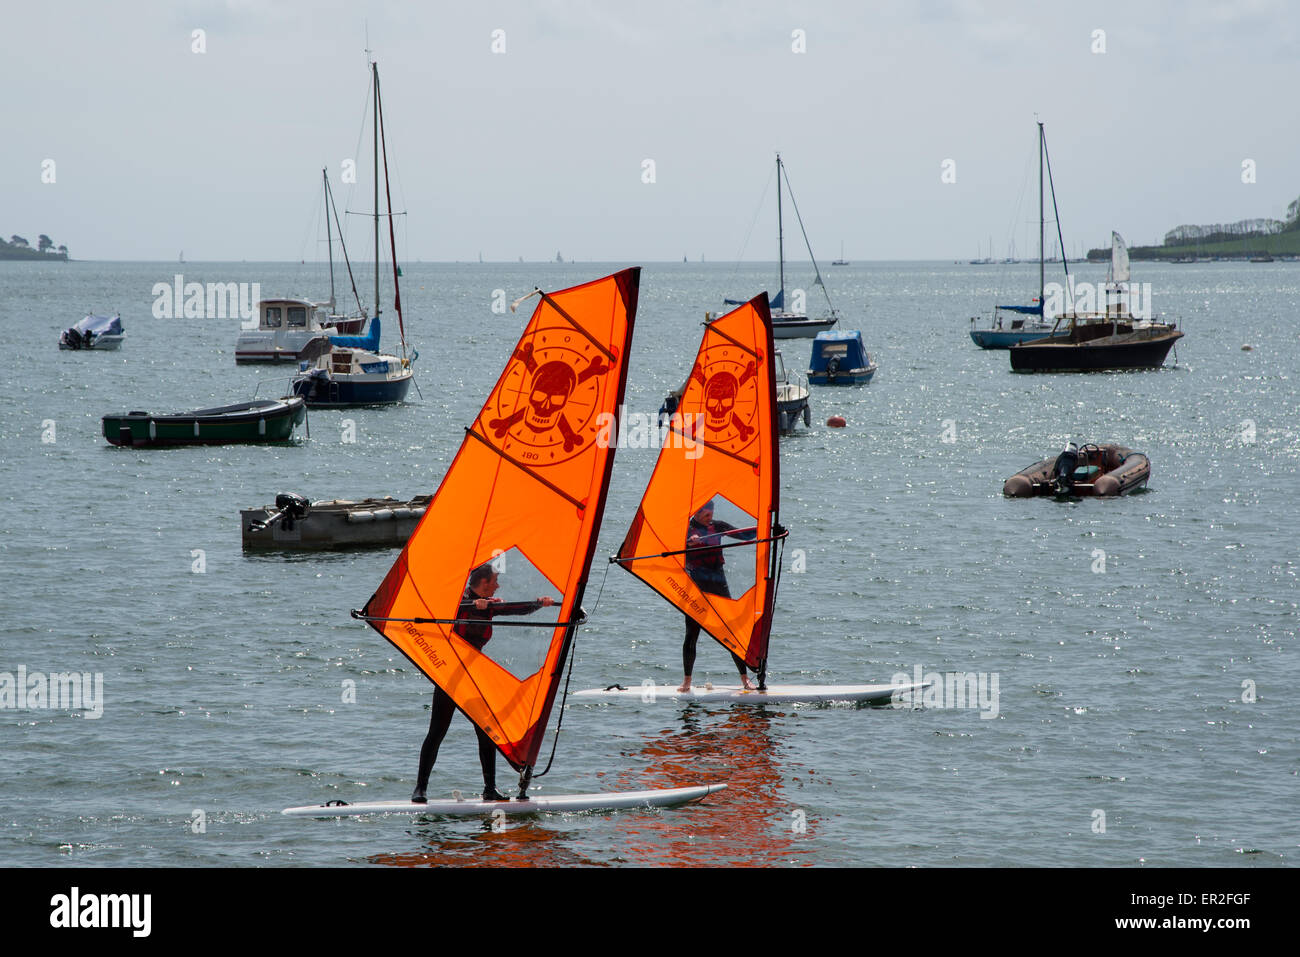 Two individuals learning to windsurf at Loe Beack, Feock near Falmouth, Cornwall. - Stock Image